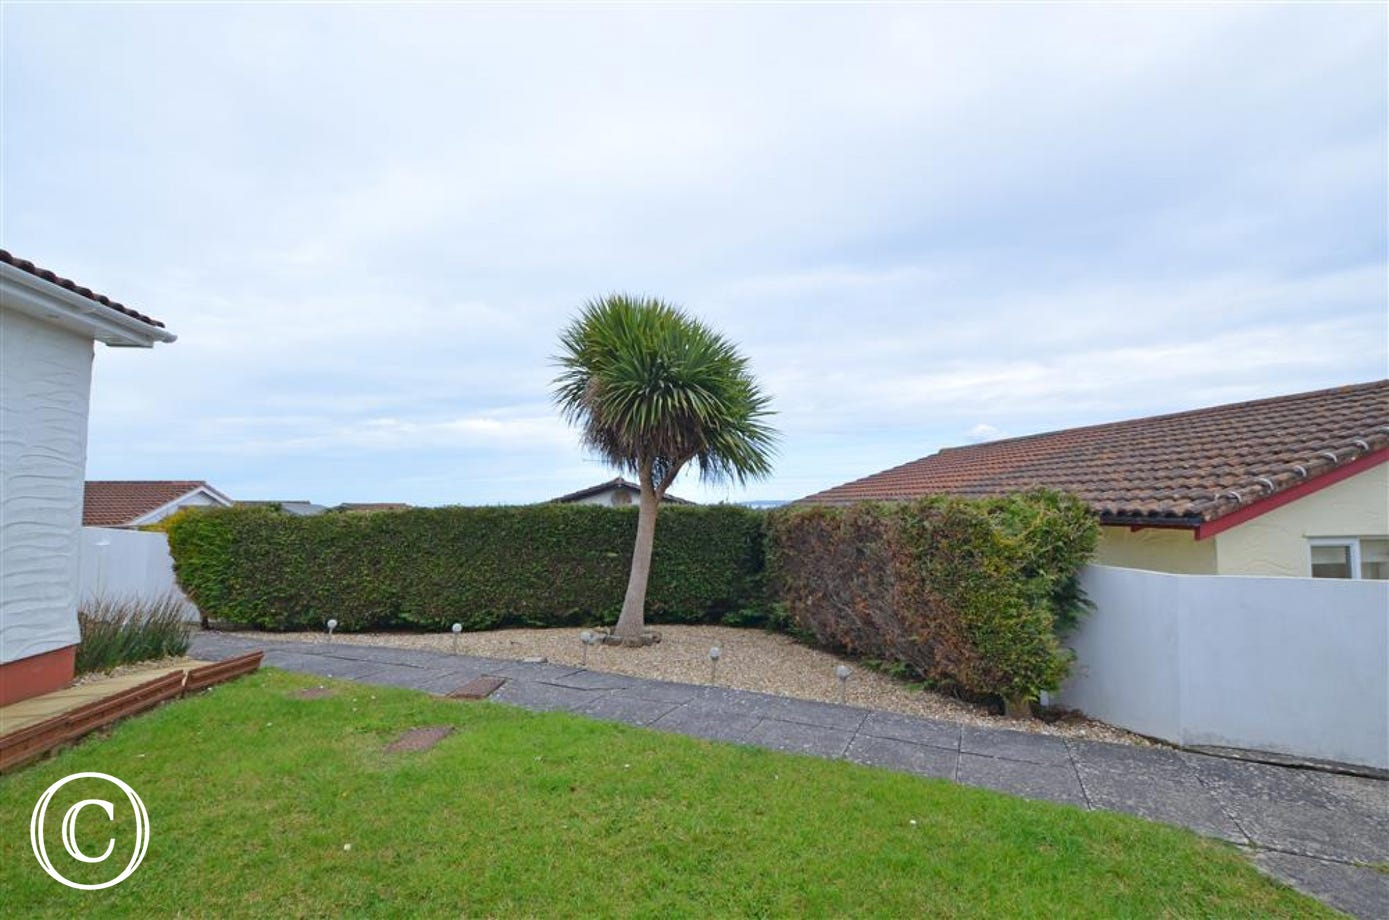 Set quietly among similar properties, the bungalow is within easy reach of all the facilities of the seaside village of Westward Ho!